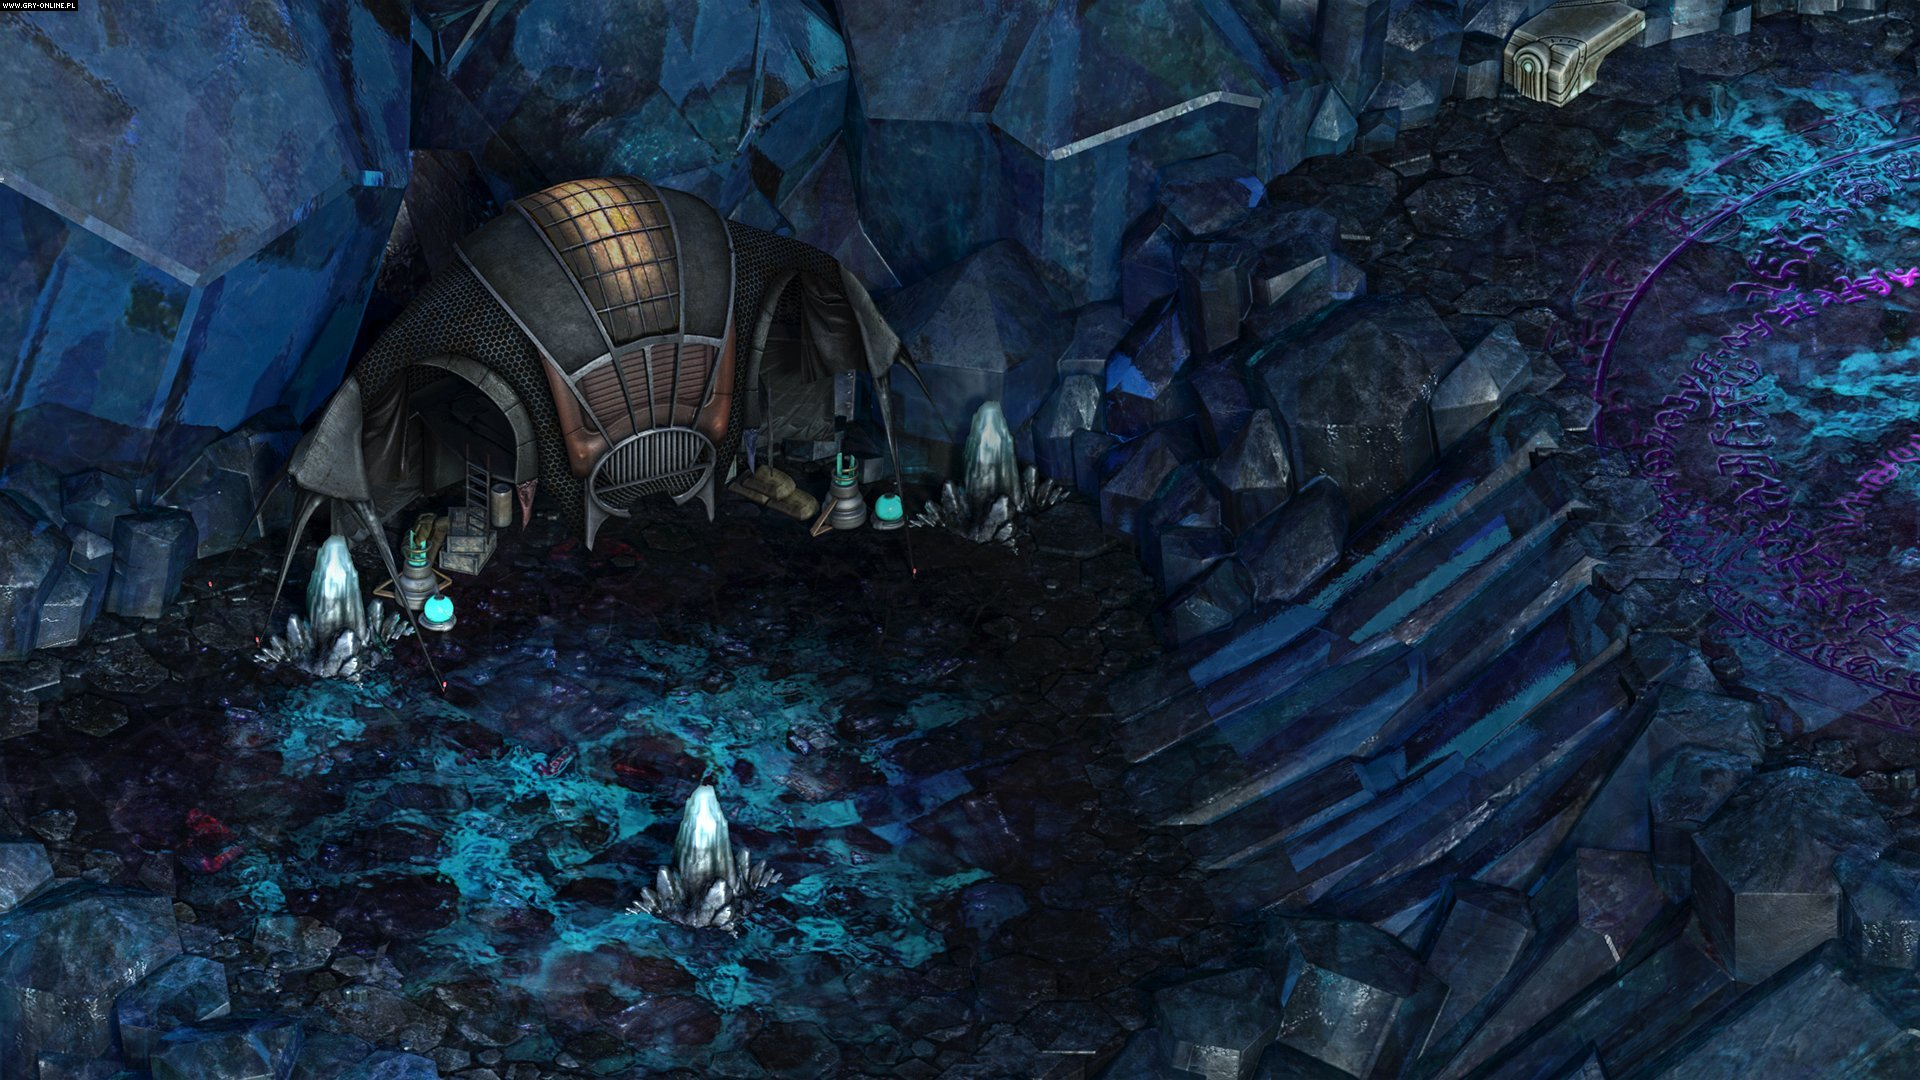 Torment: Tides of Numenera PC Games Image 22/28, inXile entertainment, Techland